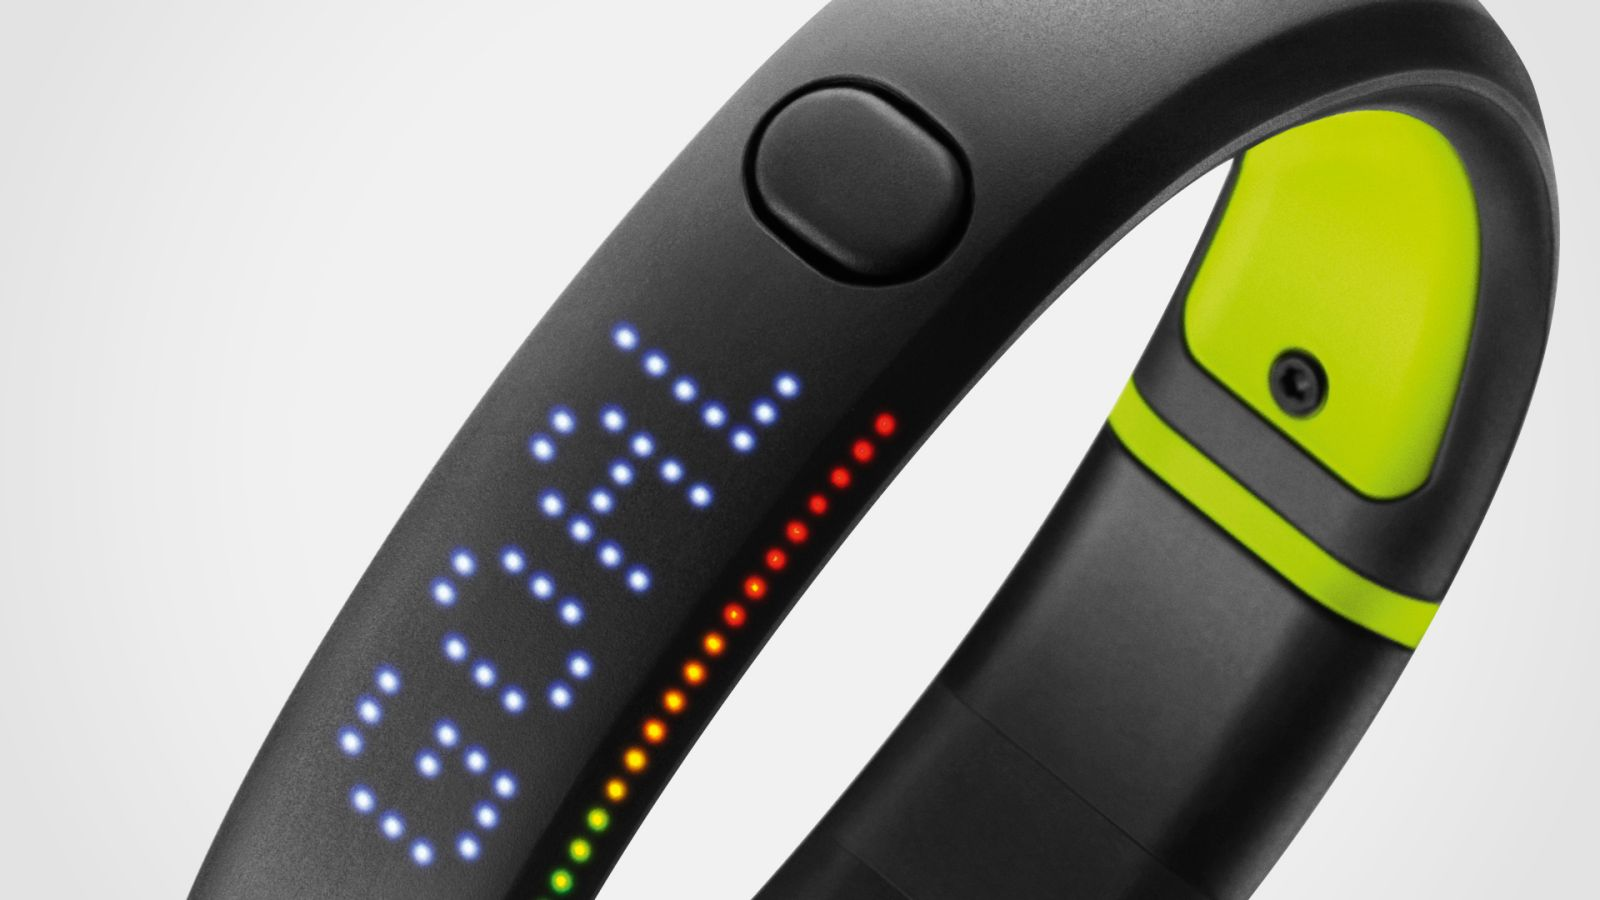 corte largo póngase en fila Converger  Nike Introduces New Nike+ FuelBand SE, An Activity Tracker That's Harder To  Trick | TechCrunch